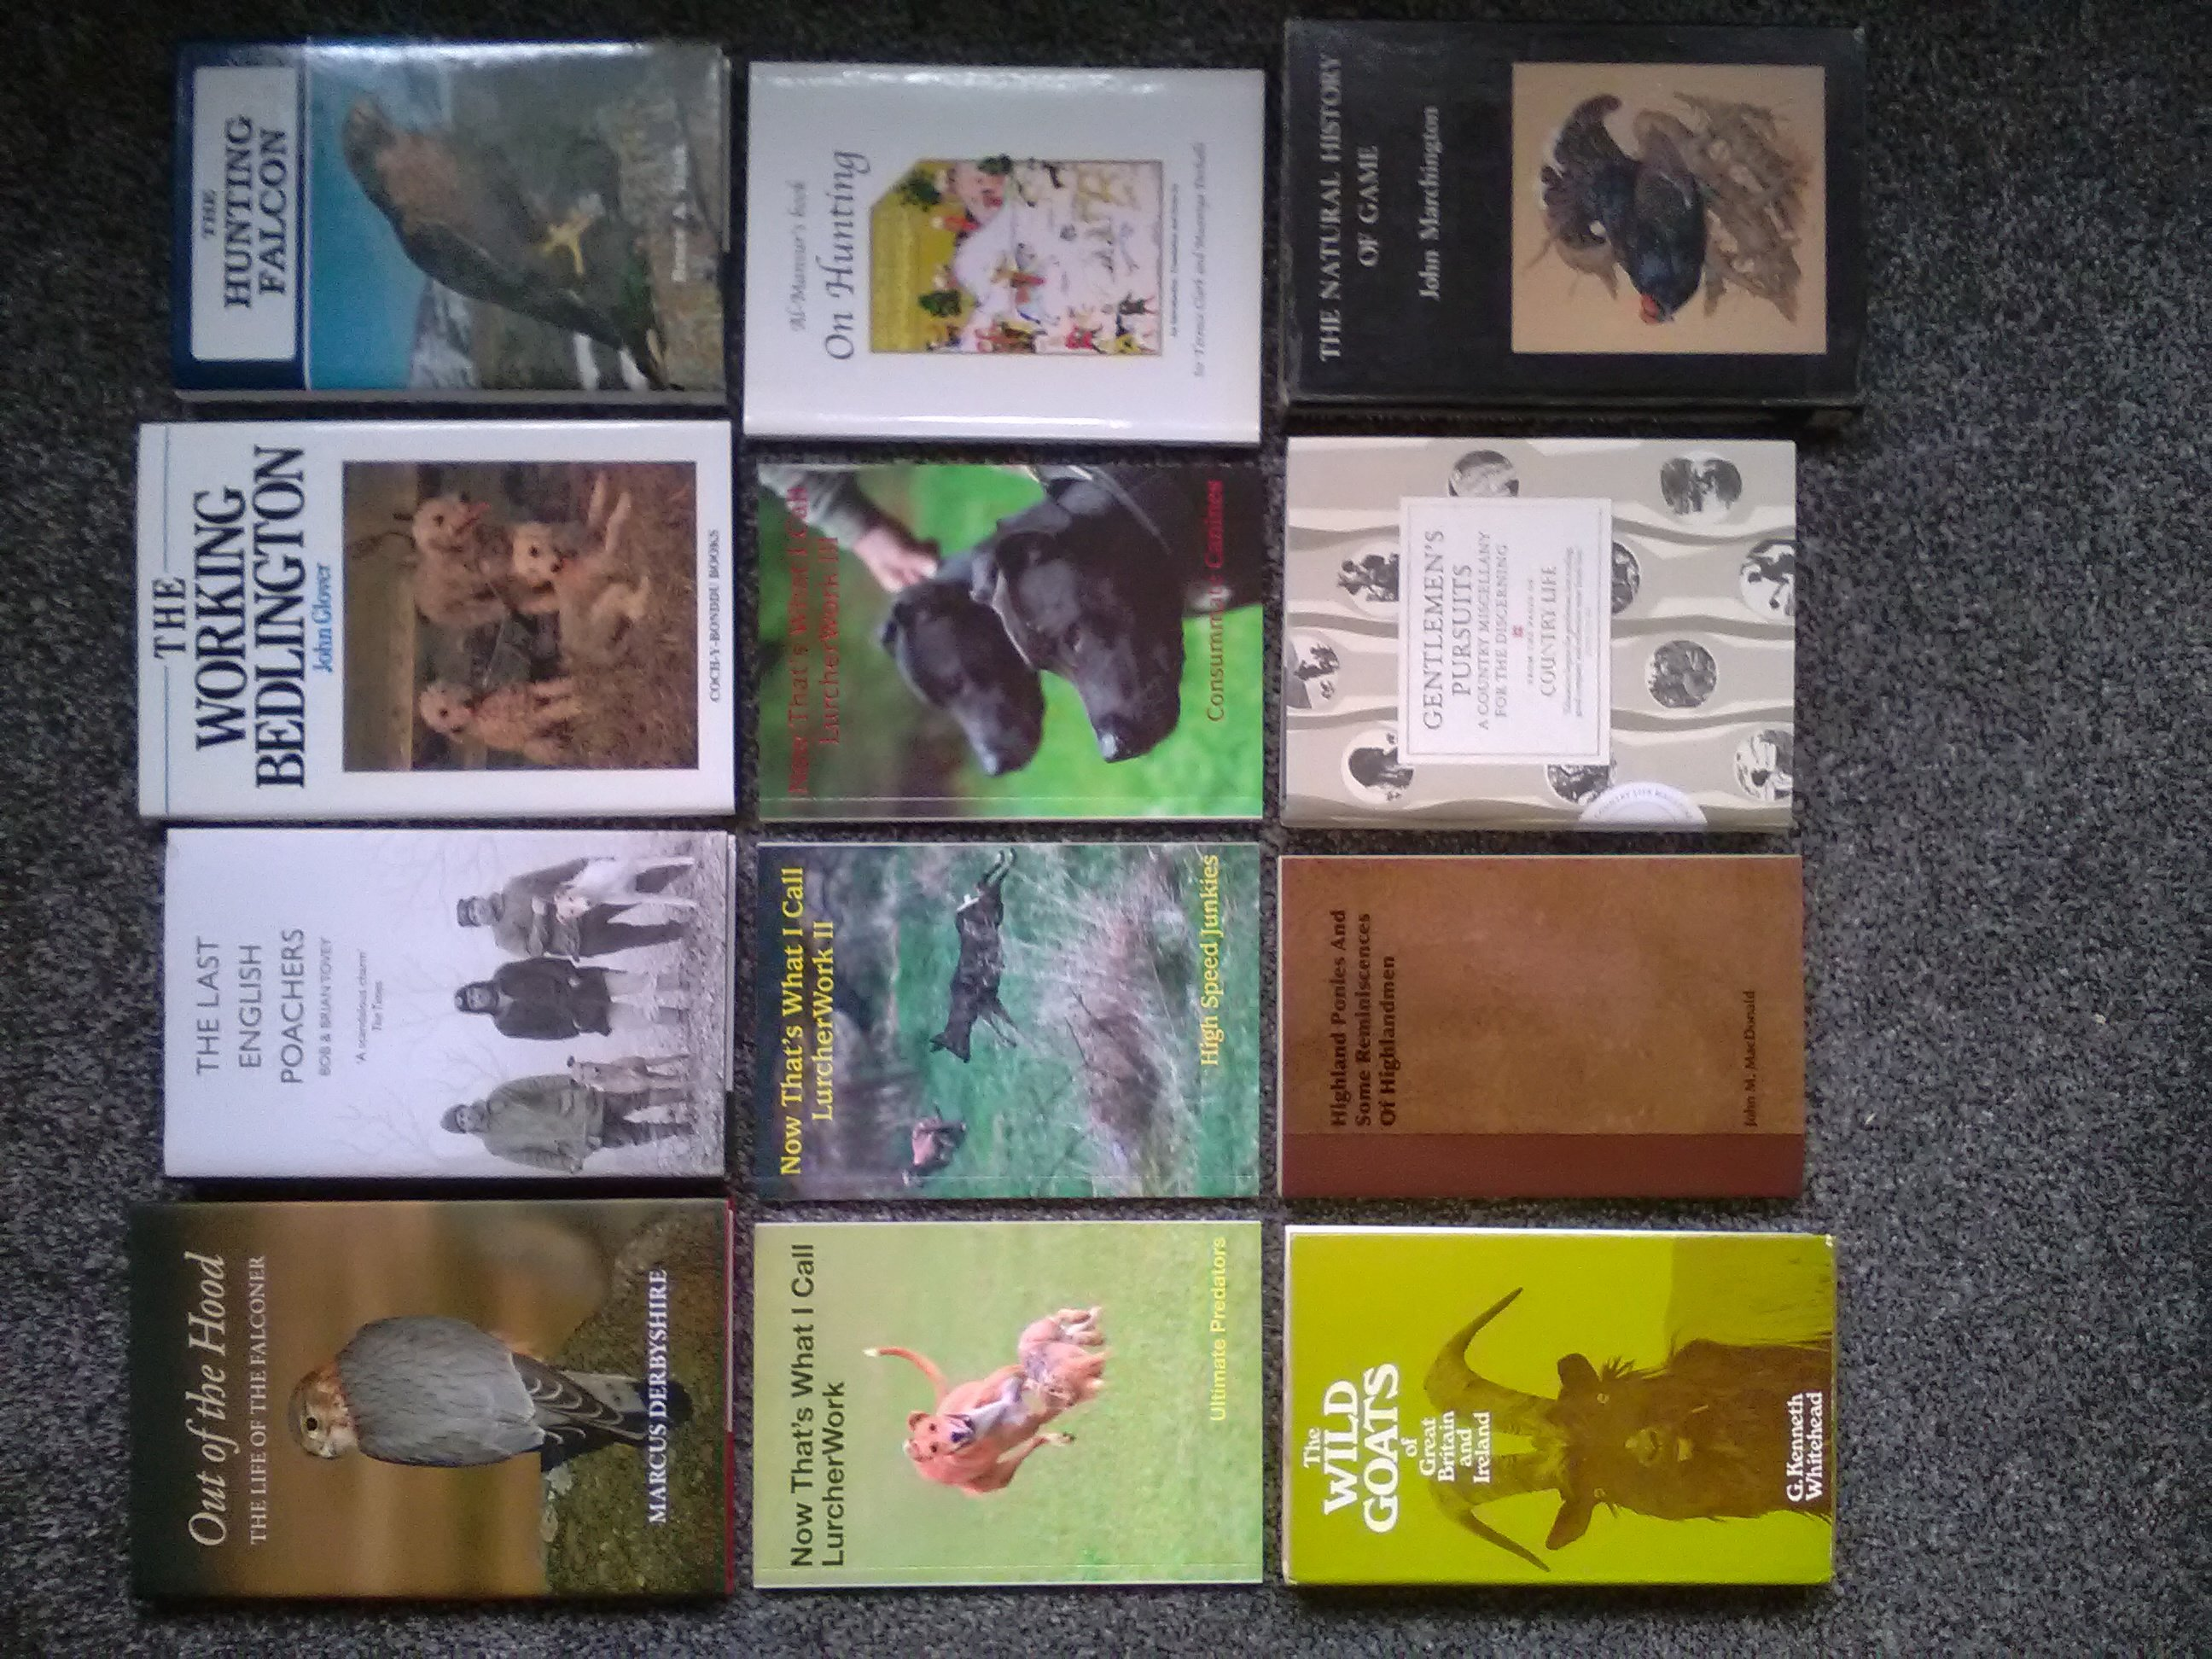 Lurcher/Falconry/Hunting/Countryside Books